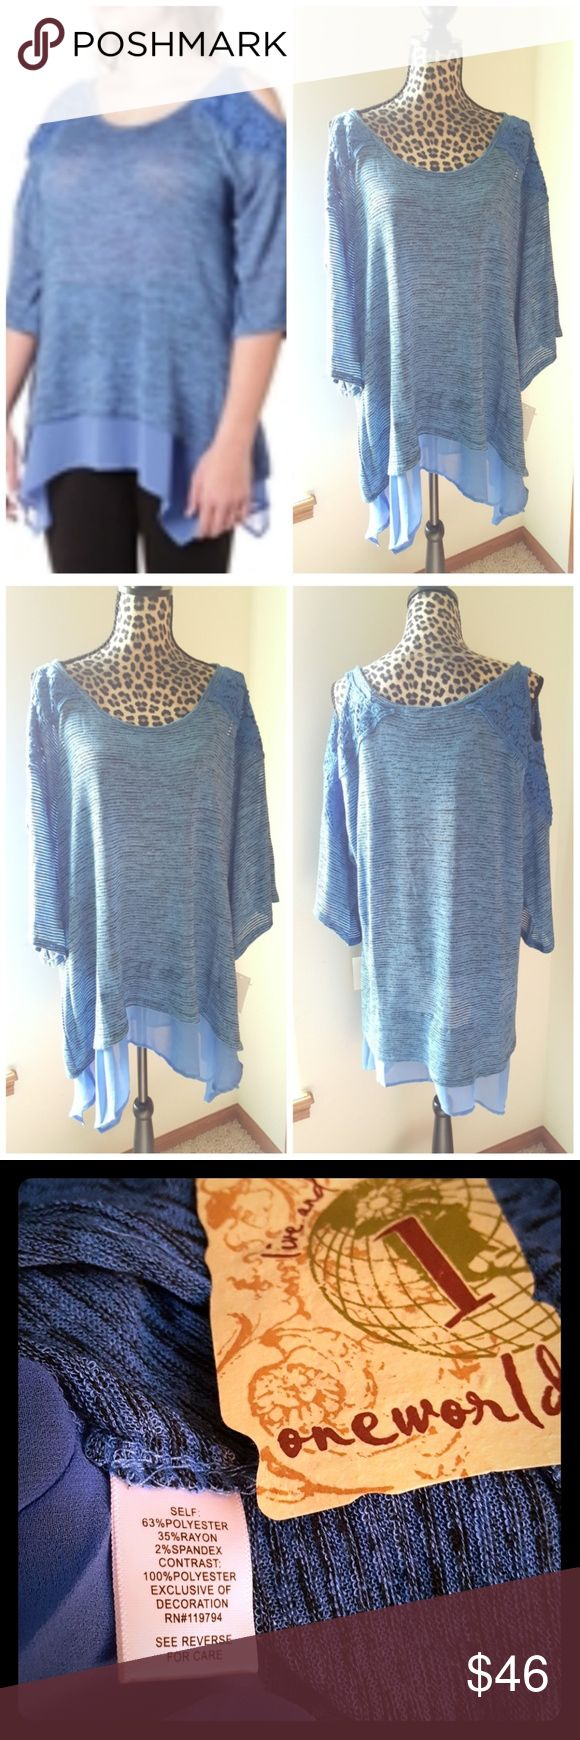 NEW Plus Size Cold Shoulder Tunic Top Brand new with tags One World Plus Size?Burnout Stripe Cold Shoulder Crochet Detail Mixed Media Tunic Top with Woven Hem.   20% off bundles or Make me an offer I'm never offended by any offer.  No trades 21men Tops Tunics